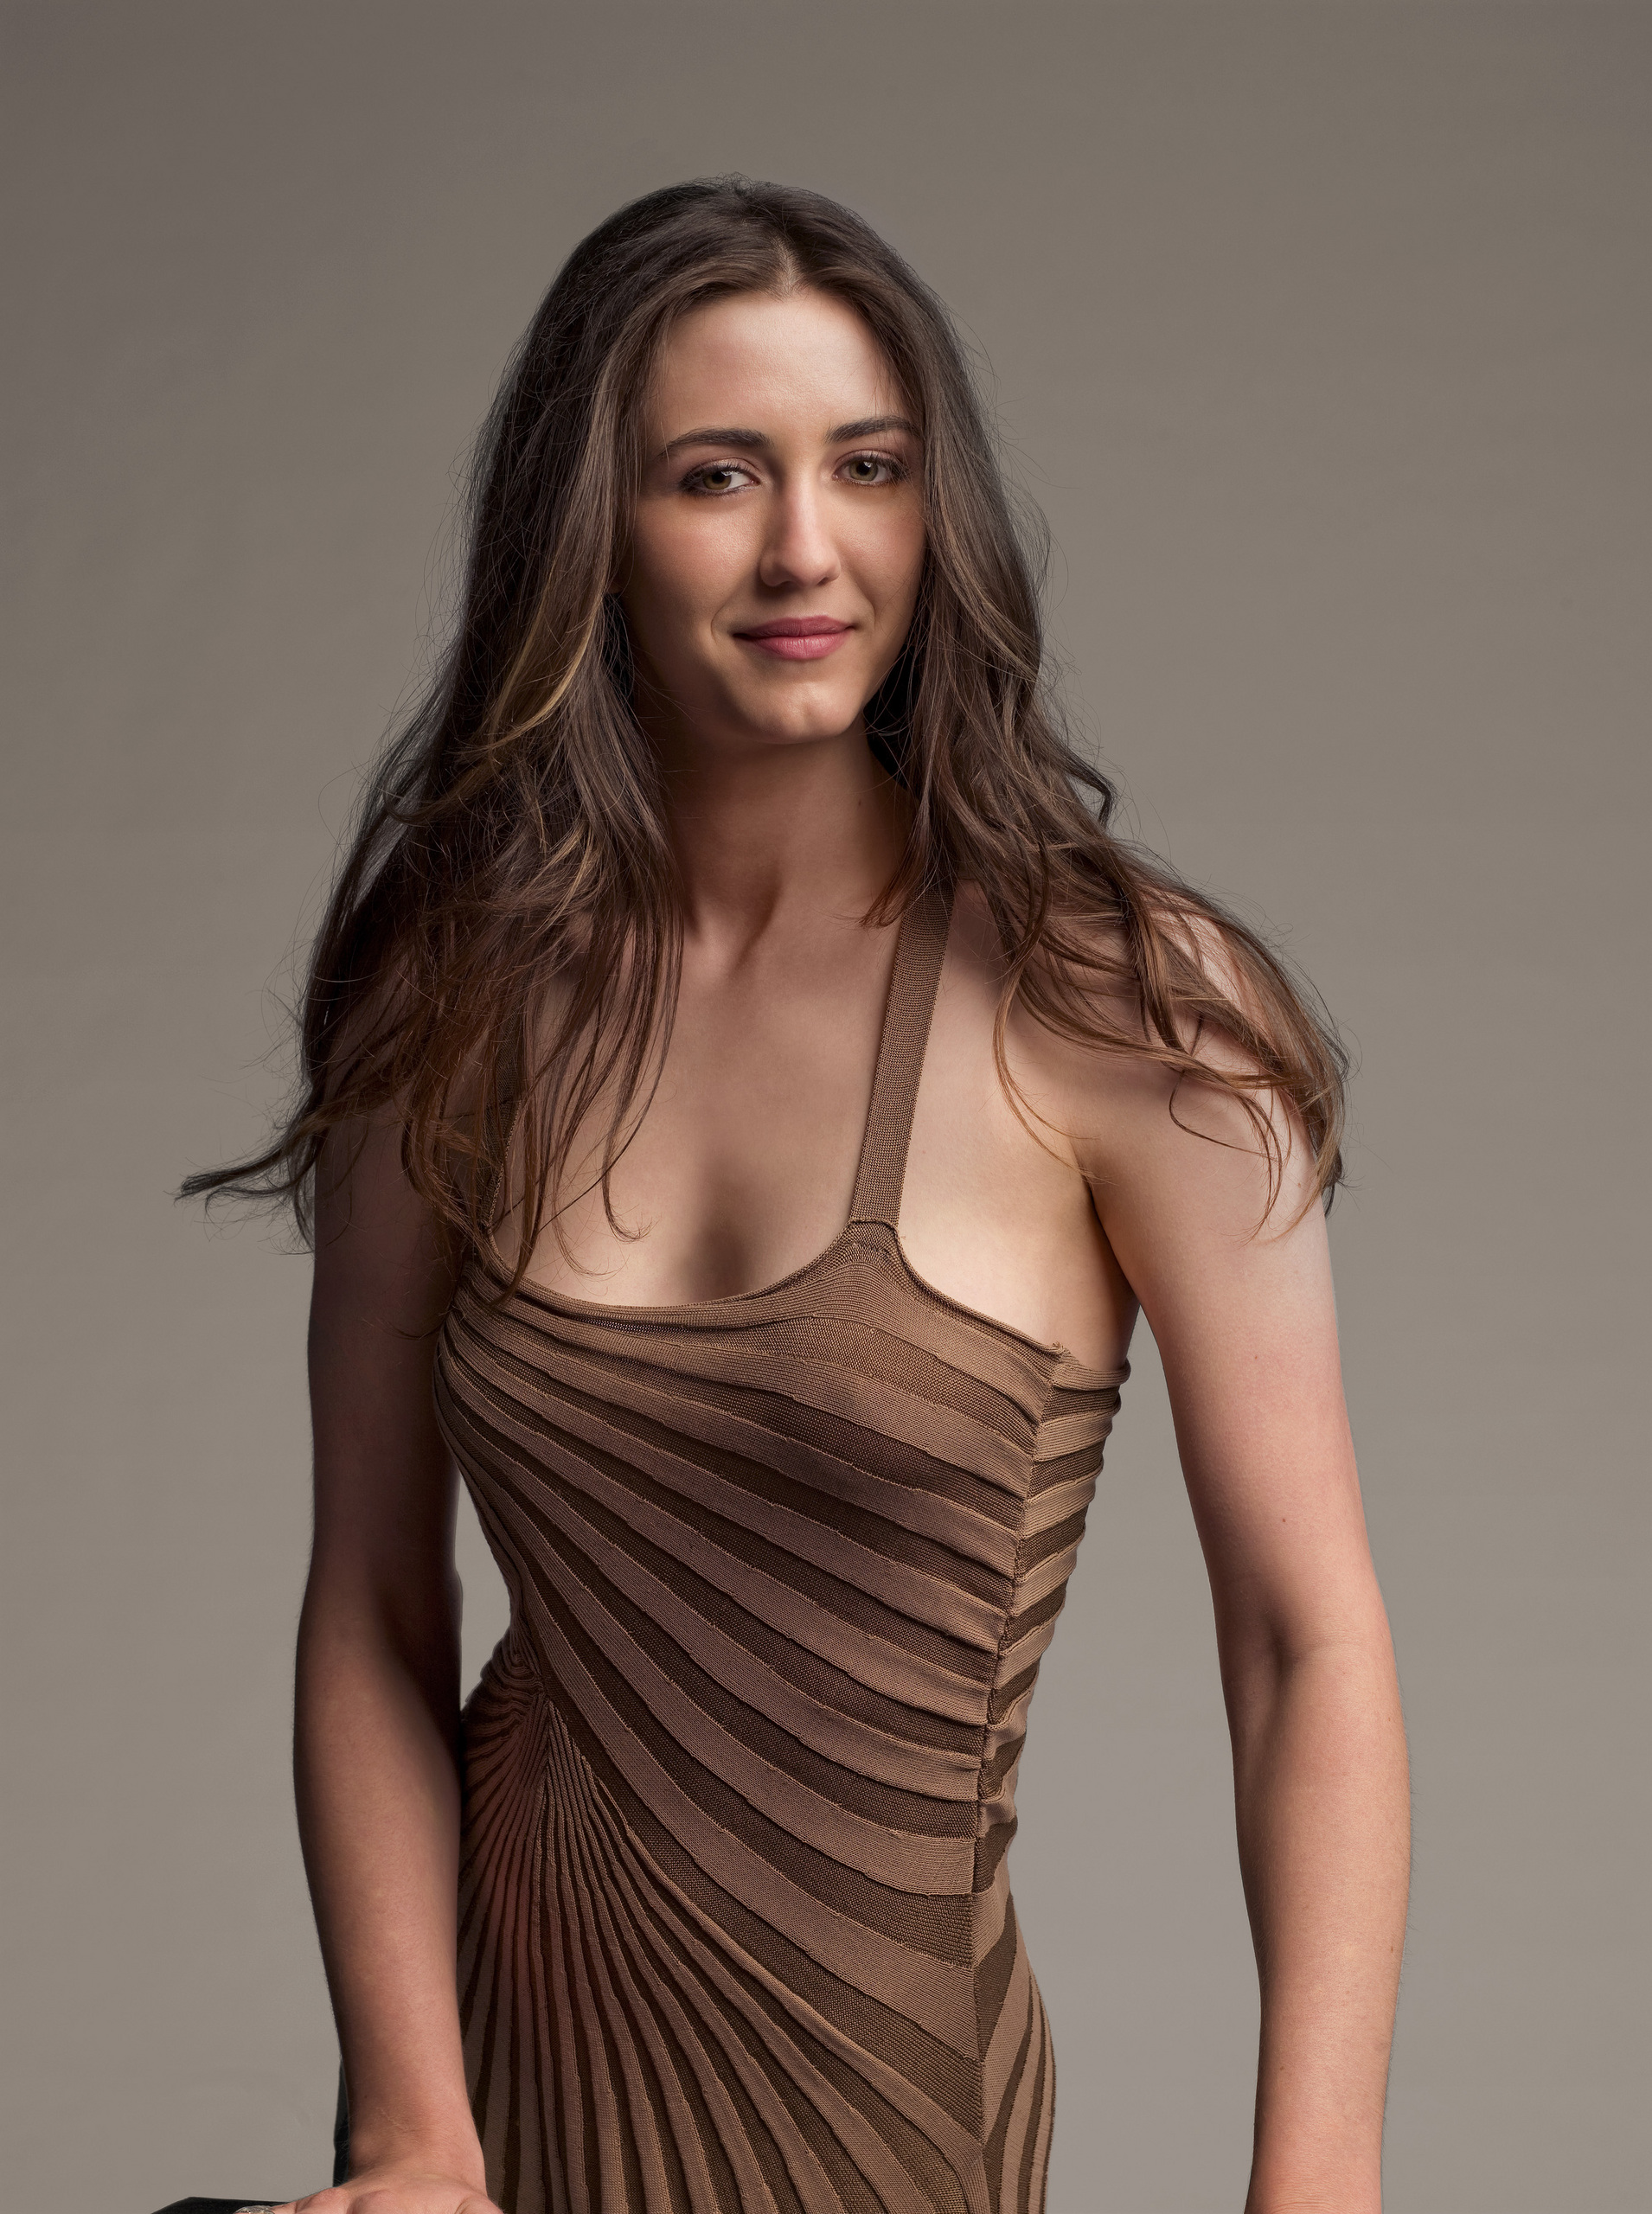 Watch Madeline Zima video